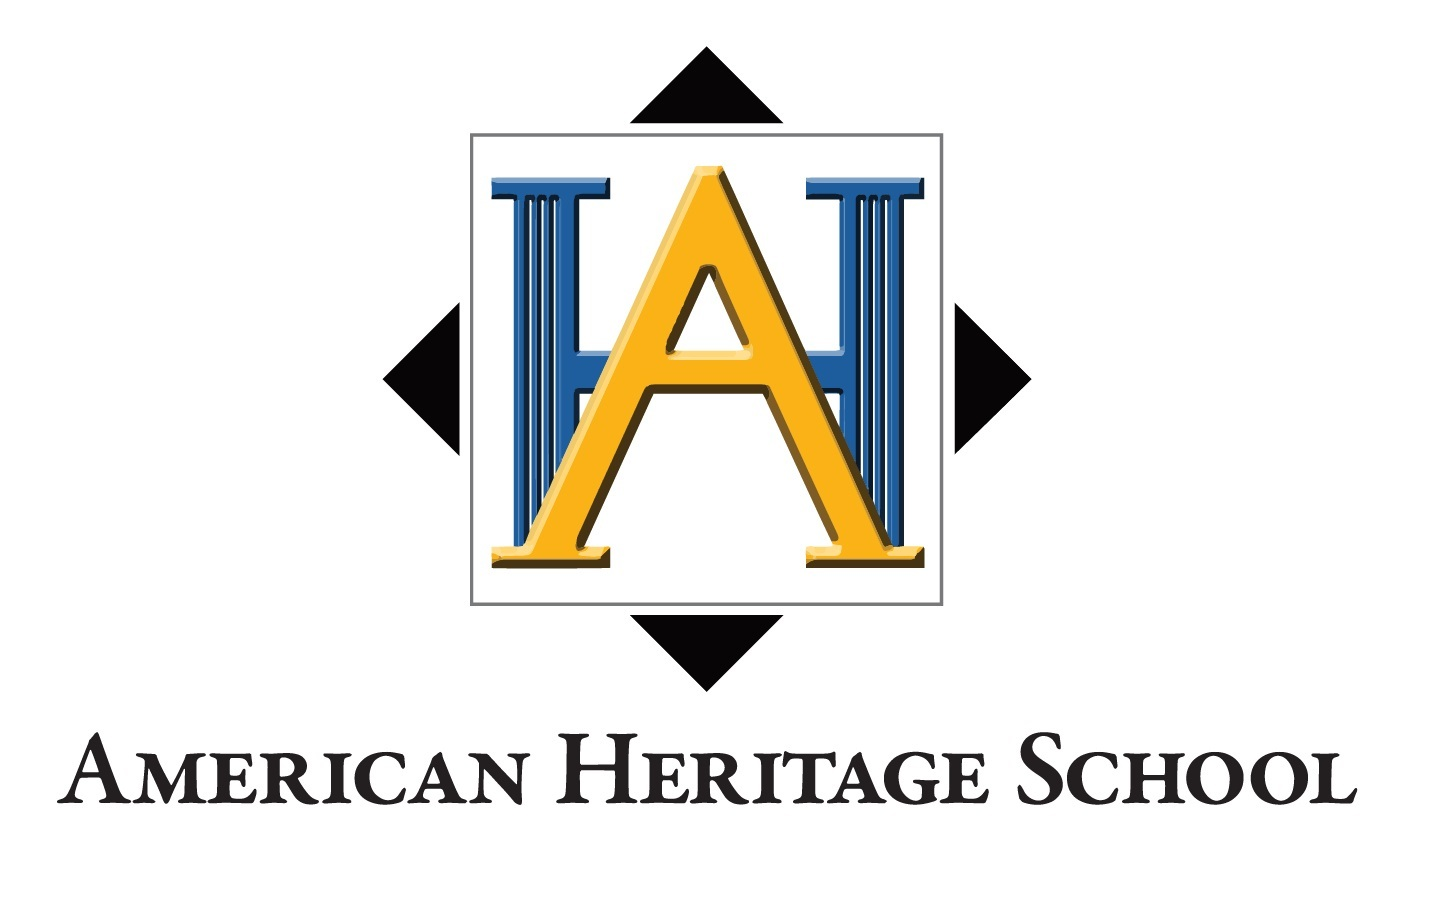 American Heritage Logo: Florida's American Heritage School Is #1 In The Nation In Math